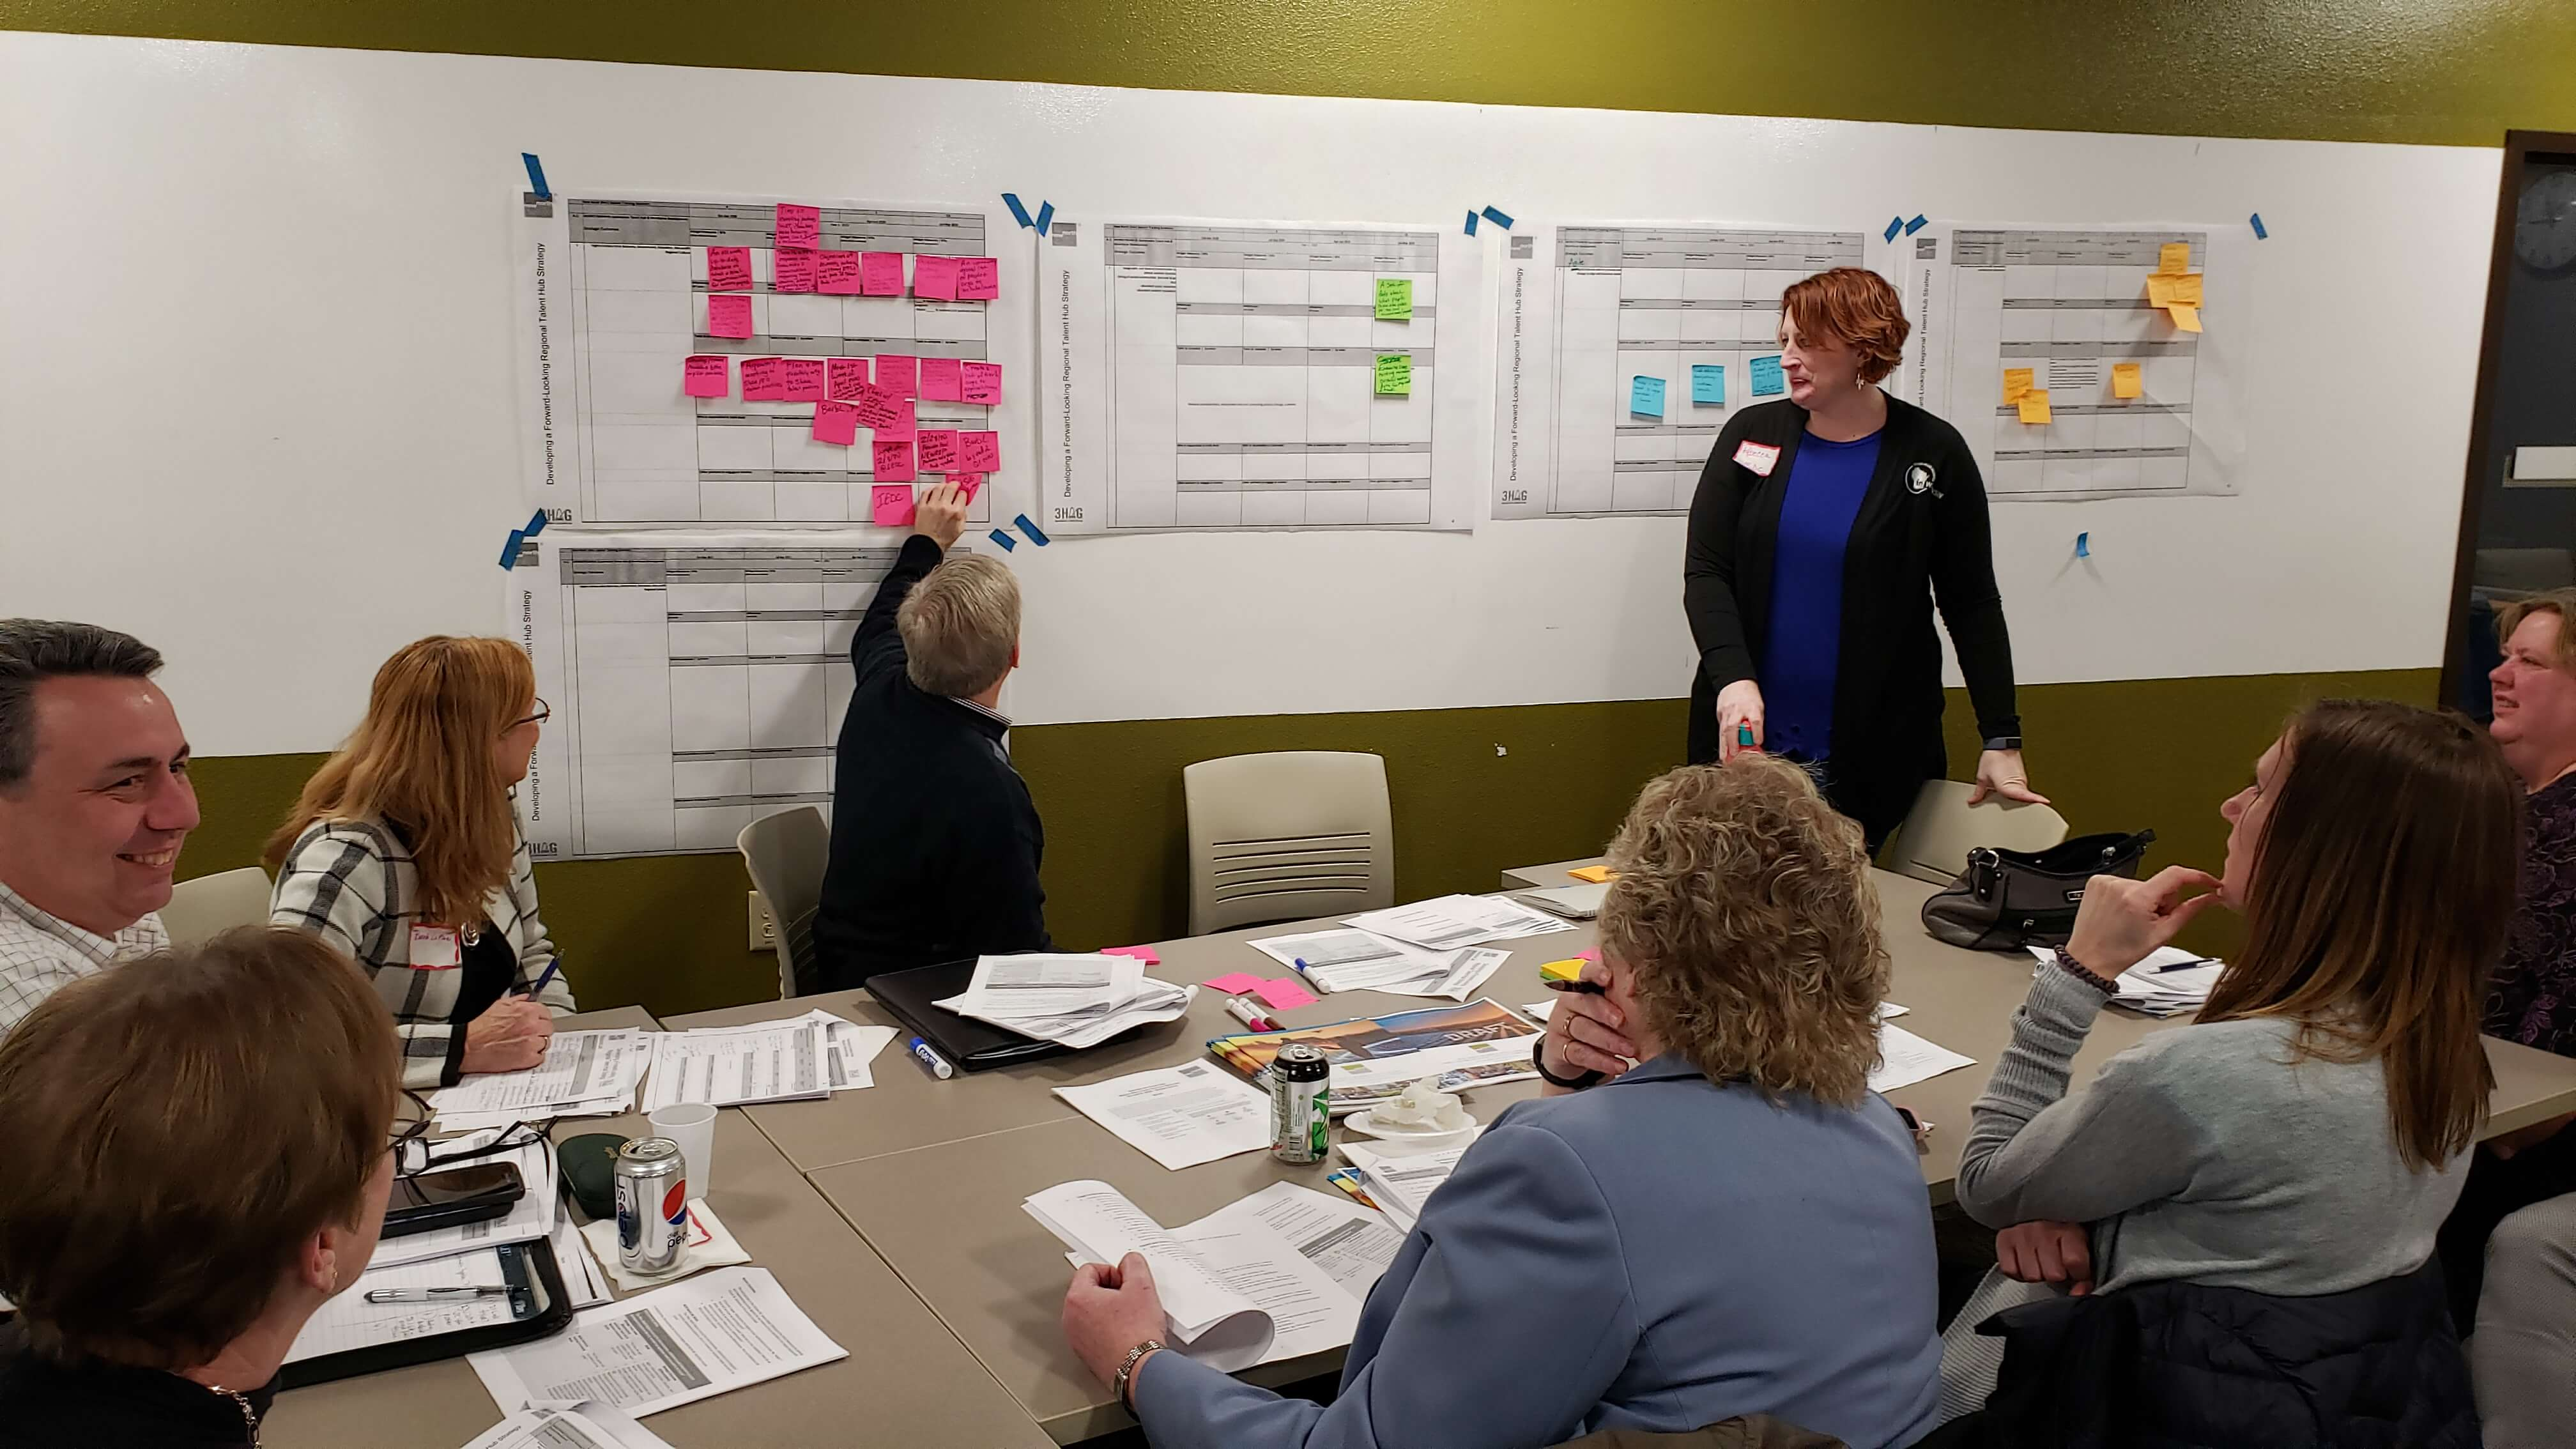 Team near whiteboard planning meeting or seminar